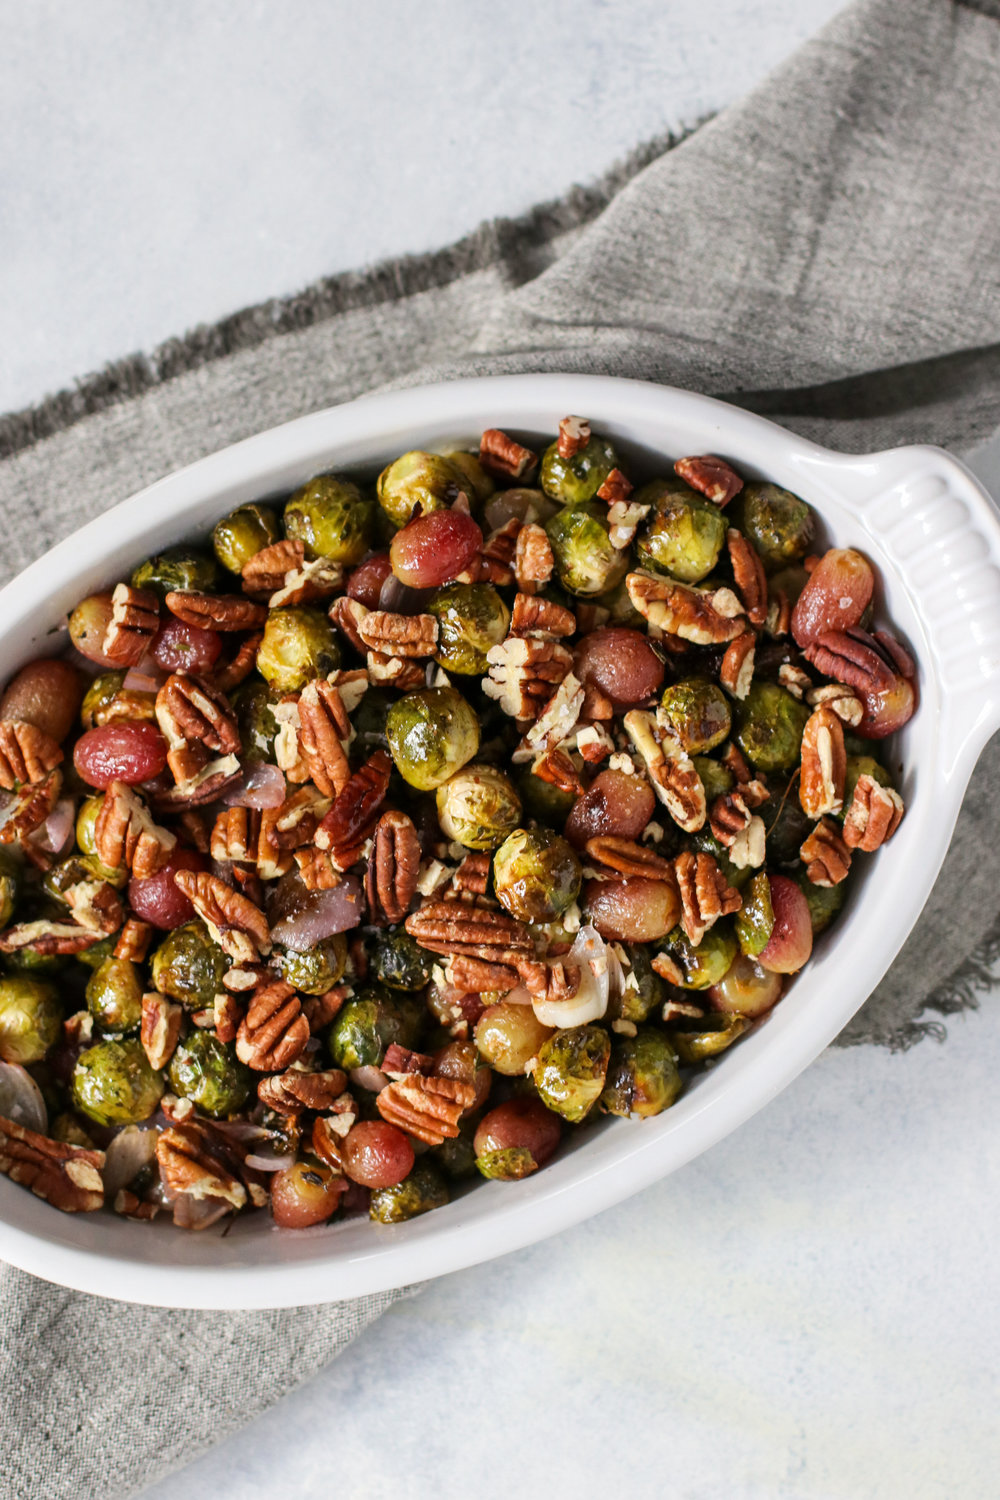 Thyme Roasted Grapes and Brussels Sprouts with Pecans and Sherry Vinegar 2.jpg